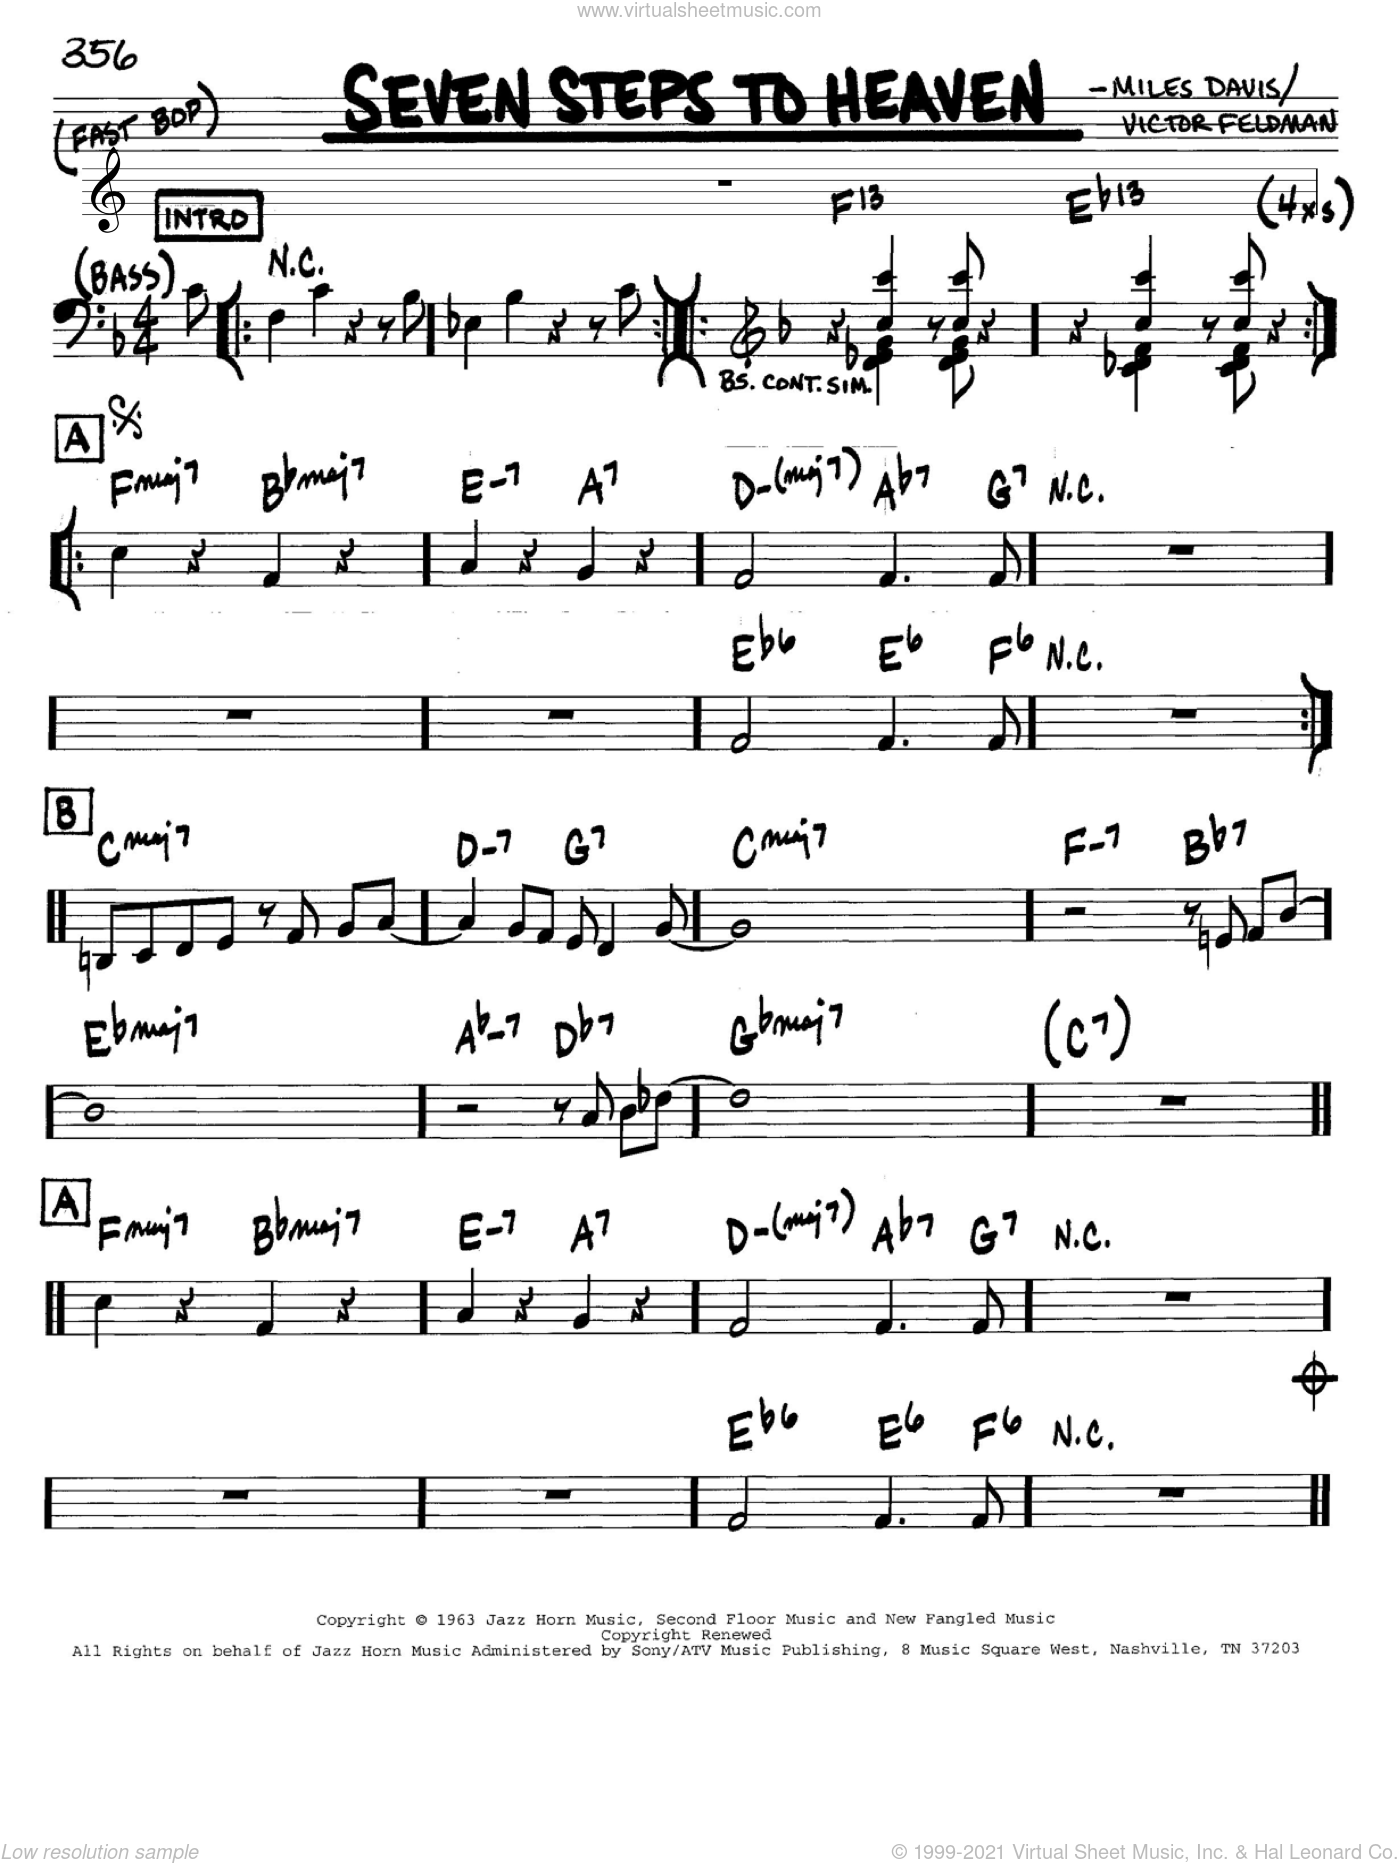 Seven Steps To Heaven sheet music for voice and other instruments (in C) by Miles Davis and Victor Feldman, intermediate skill level